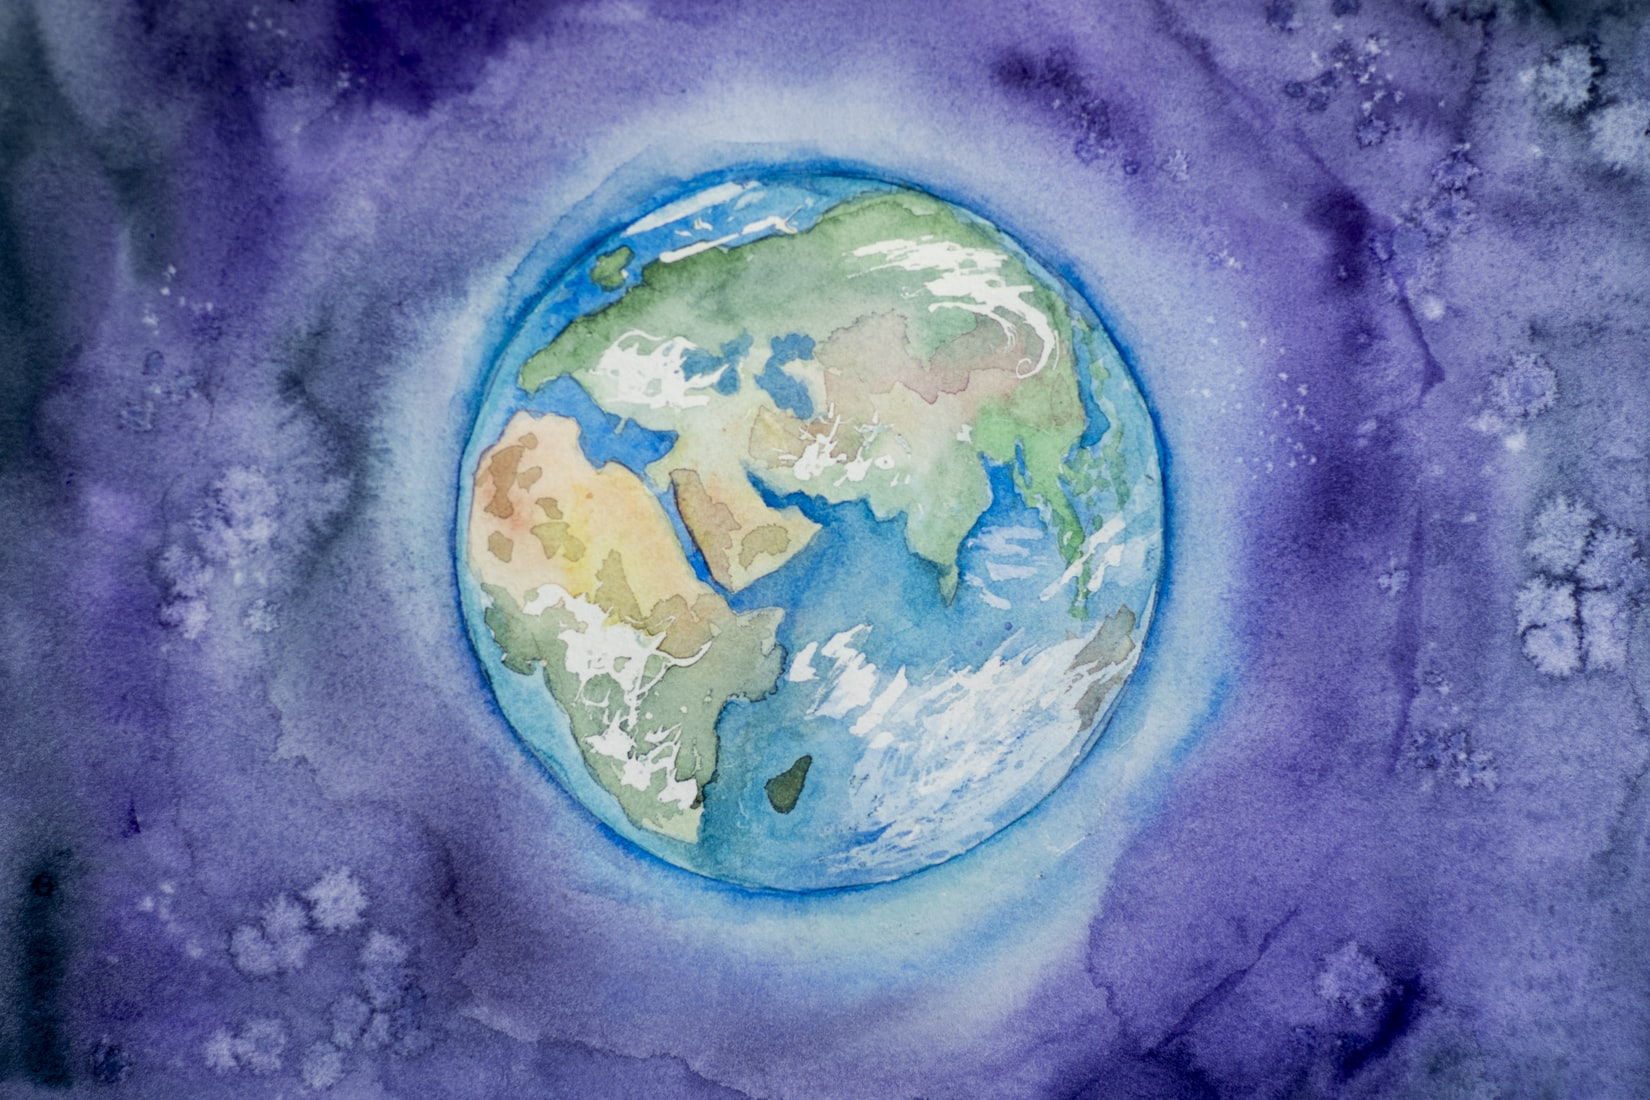 Watercolor image of the Earth by Elena Mozhvilo, Earth Day 2022